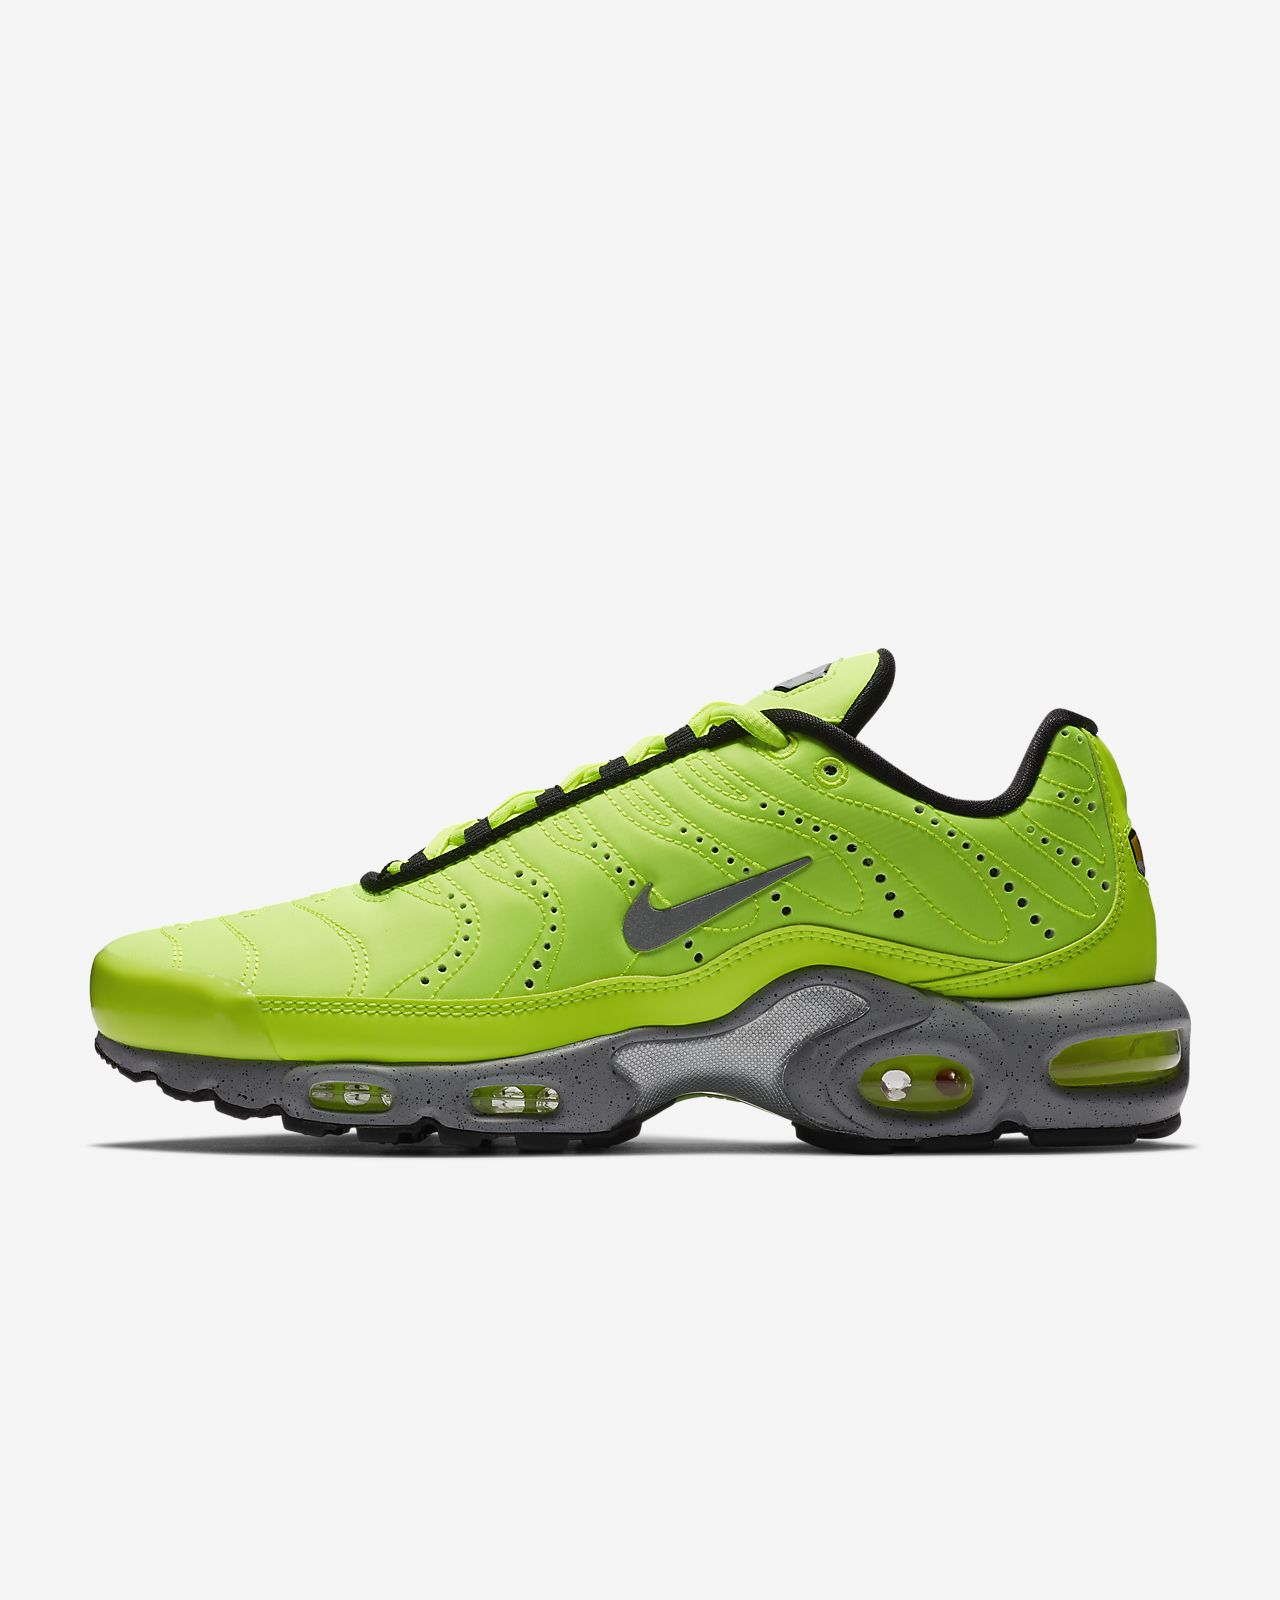 e0e39759f82 Nike Air Max Plus Premium Men s Shoe. Nike.com GB